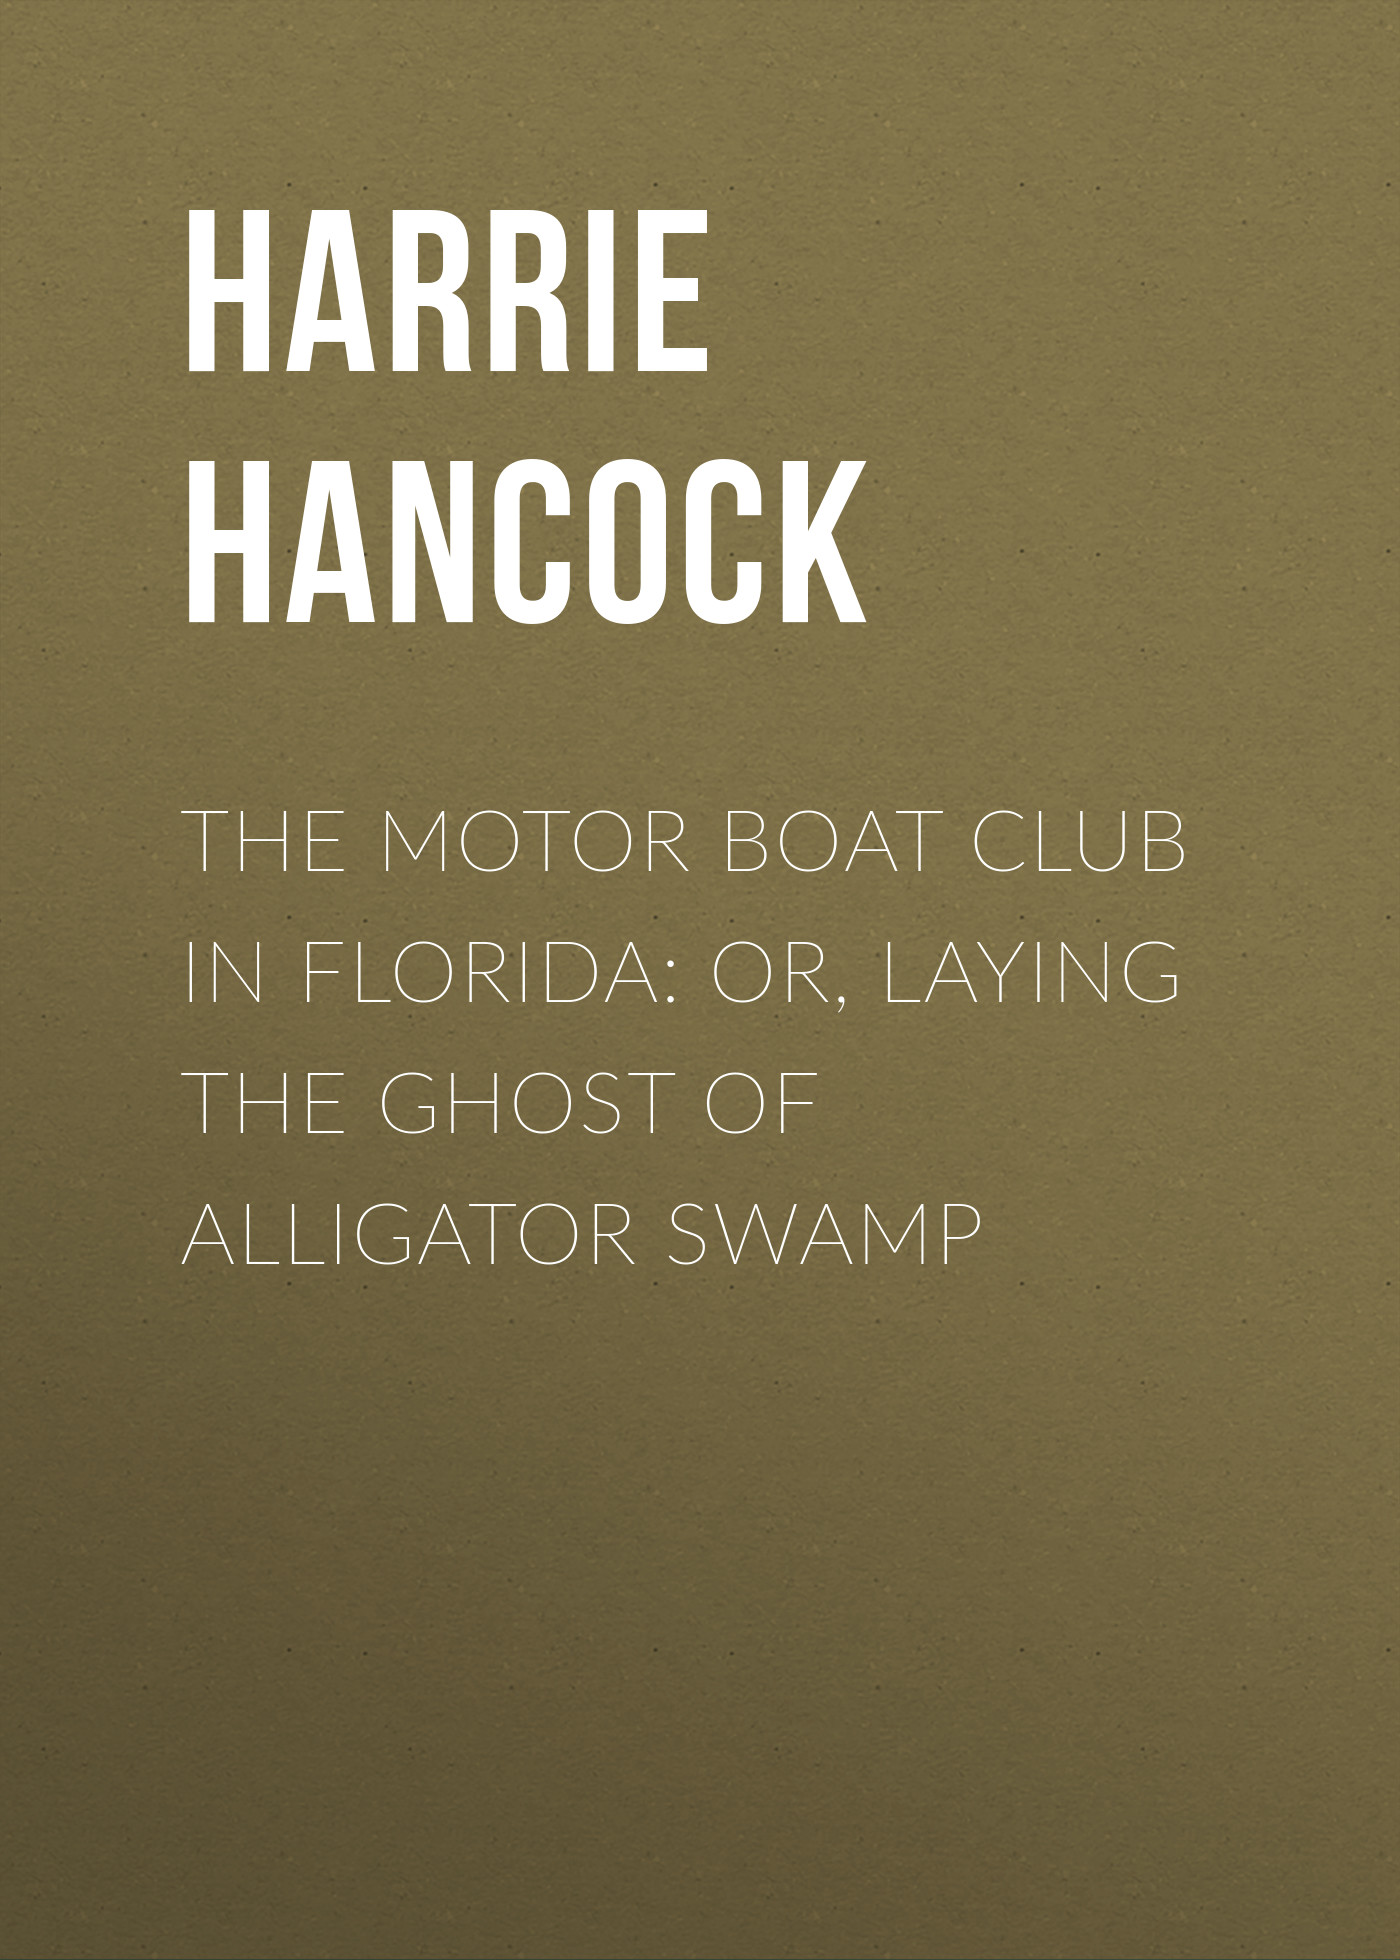 Hancock Harrie Irving The Motor Boat Club in Florida: or, Laying the Ghost of Alligator Swamp 220vac loud 112db motor driven air raid siren metal horn industry boat alarm